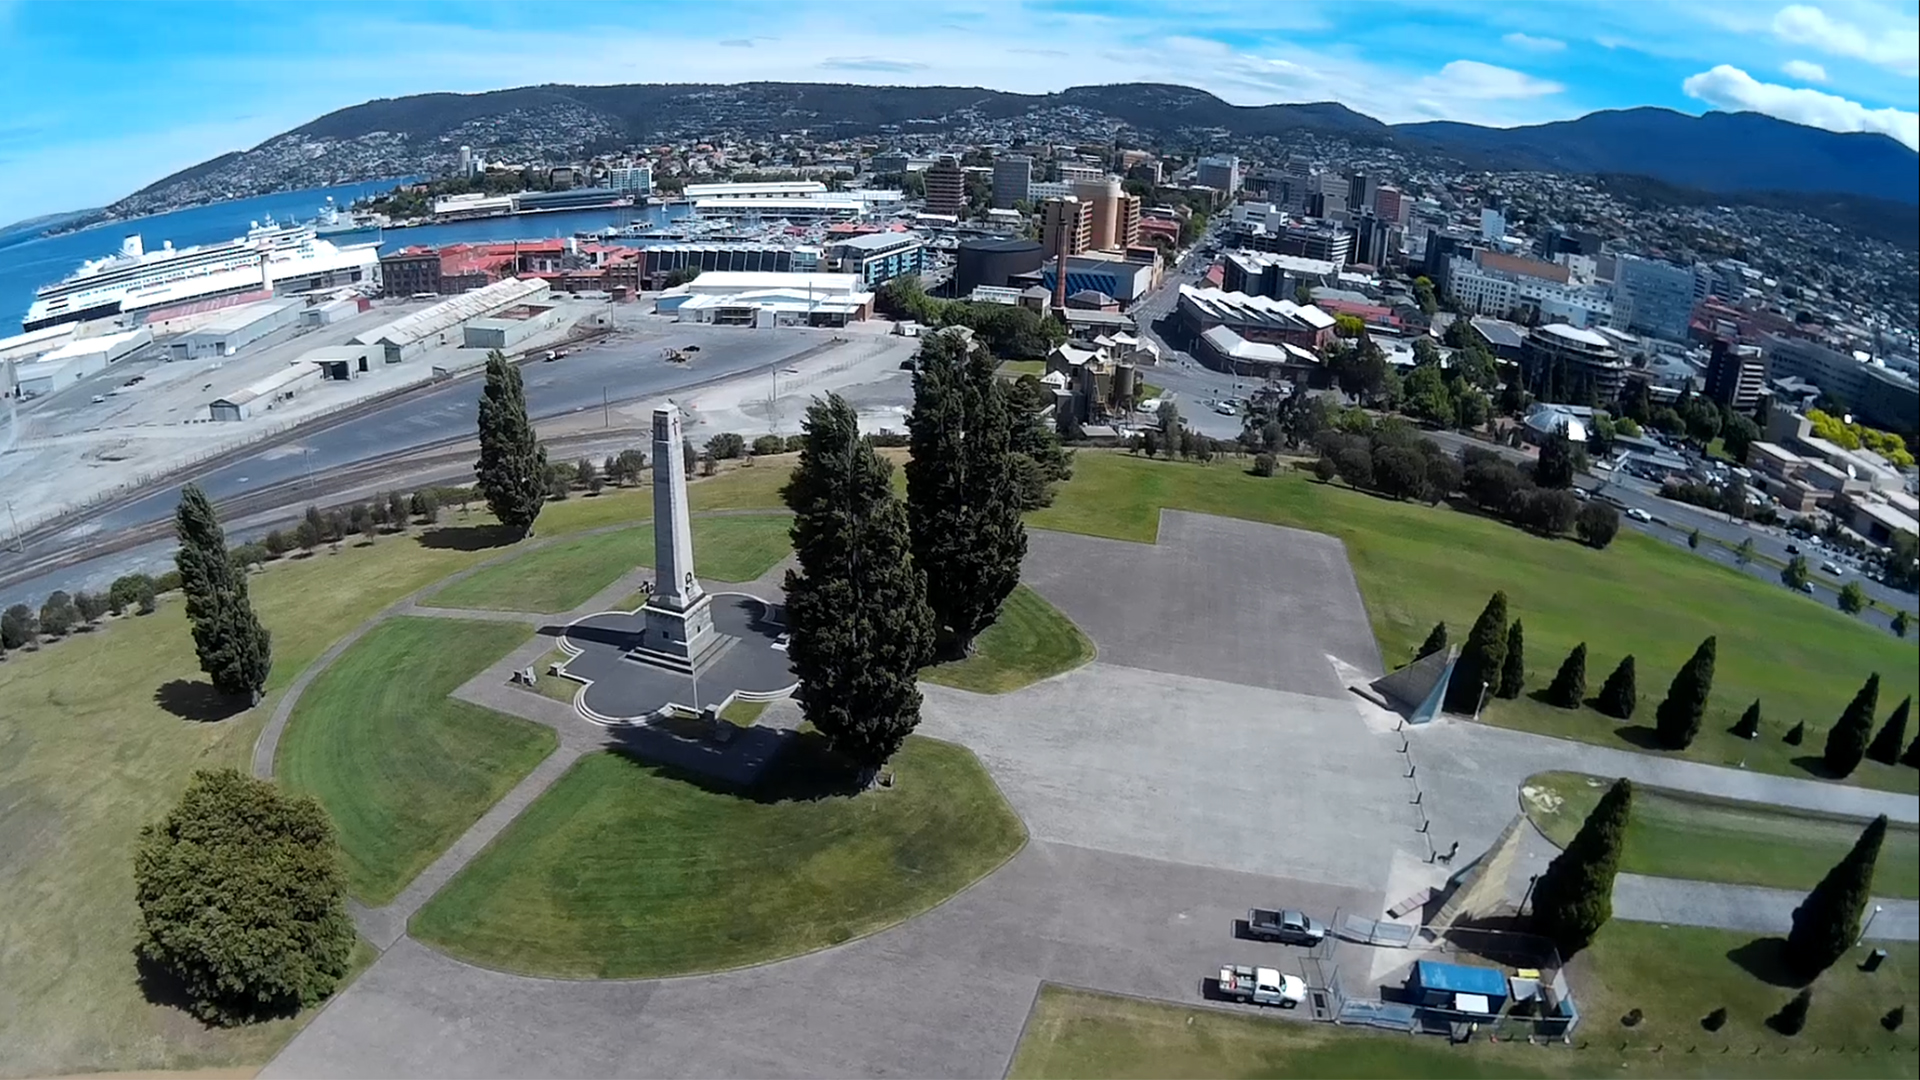 Hobart Cenotaph from the Scout X4 - still from iLook video.